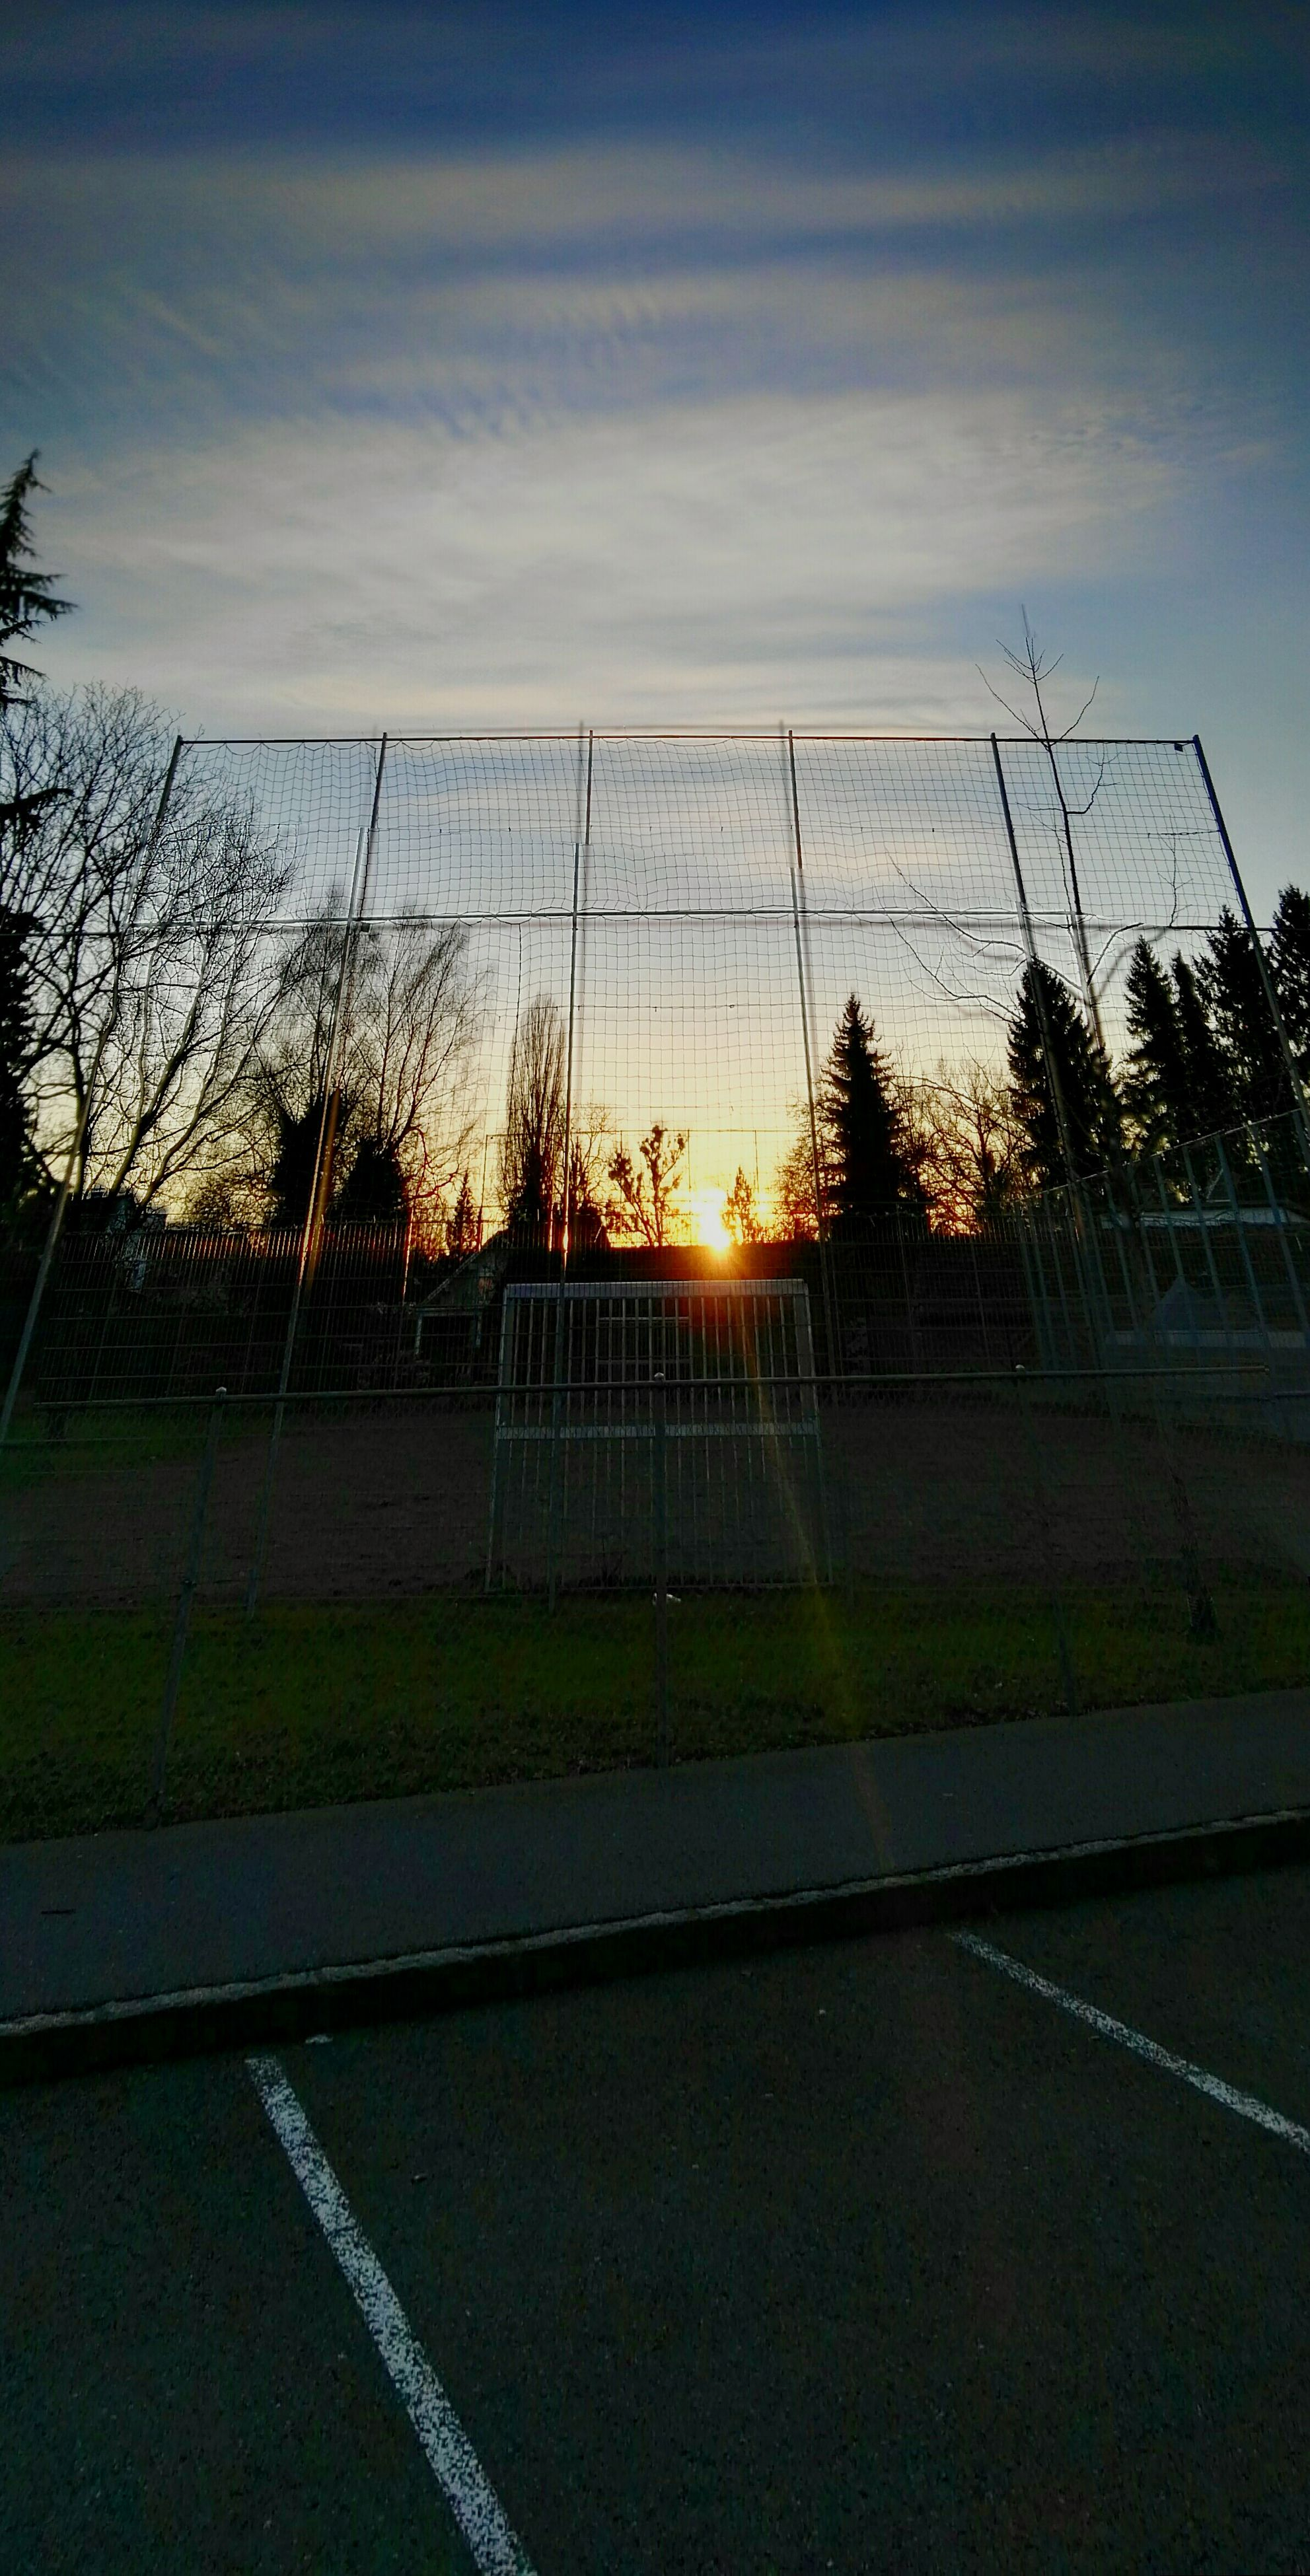 sport, sky, no people, soccer field, net - sports equipment, tree, soccer, outdoors, playing field, grass, day, court, goal post, nature